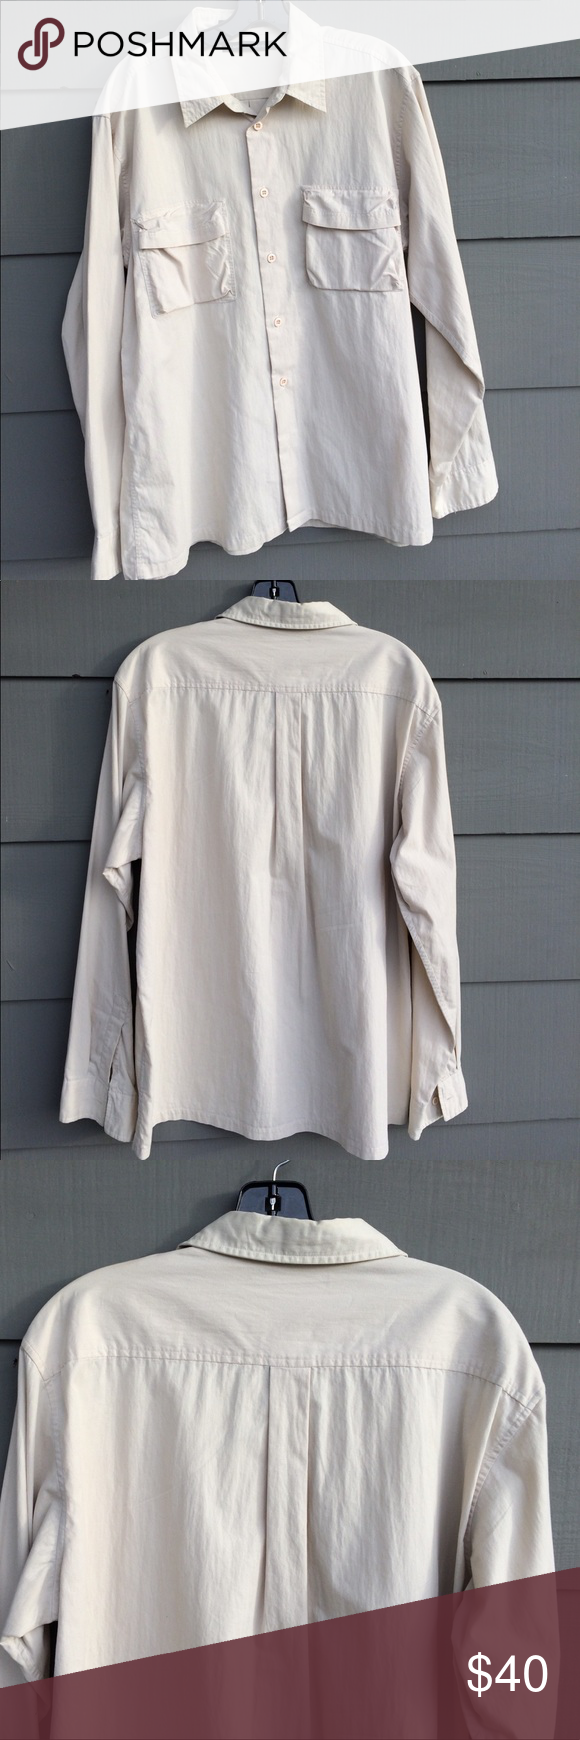 Club Monaco men's shirt Super soft cotton shirt with stylish pockets in front.  New condition. Beautiful shirt Club Monaco Shirts Casual Button Down Shirts